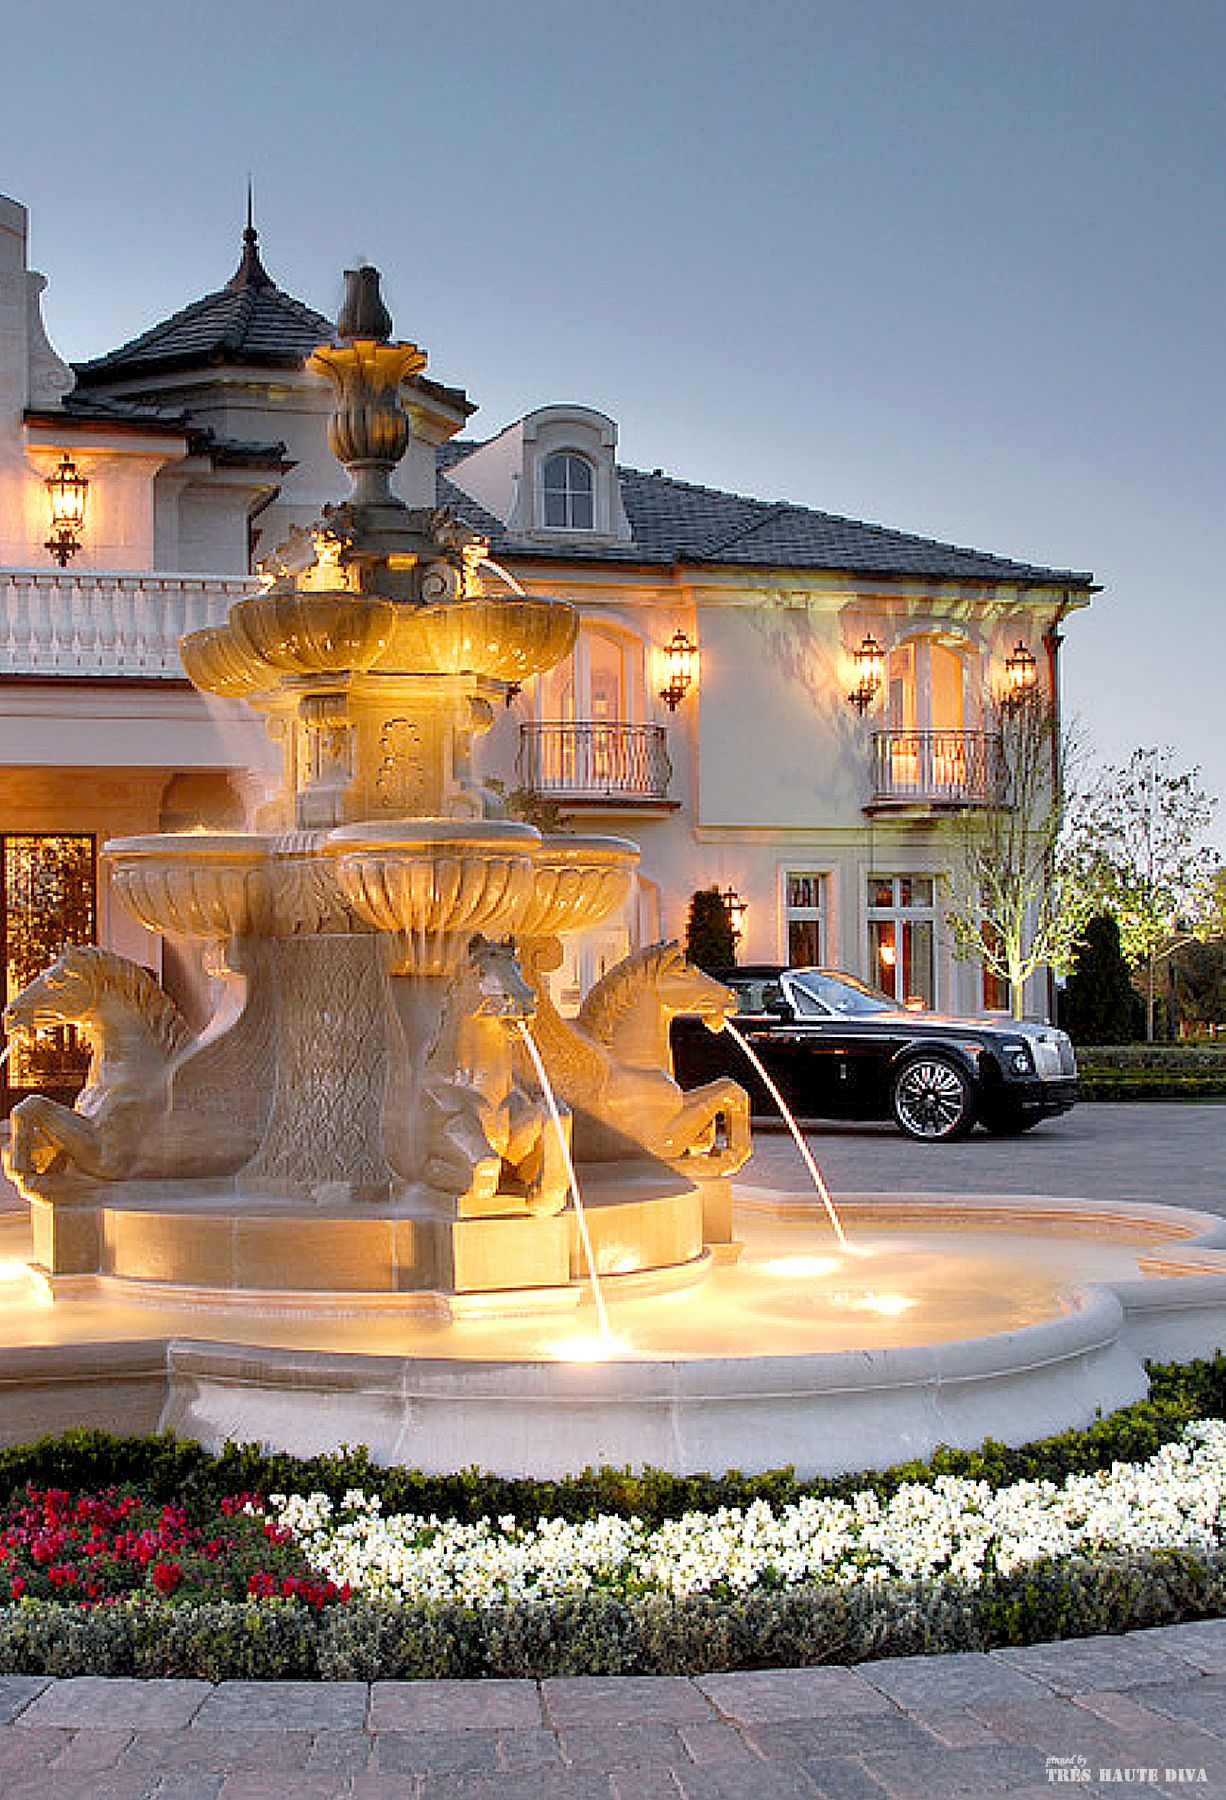 French Chateau Style Driveway With Fountain Find Beautiful Decorative Lighting Accessories At Creativemary Com Pt Mansions Luxury Homes Chateau Style